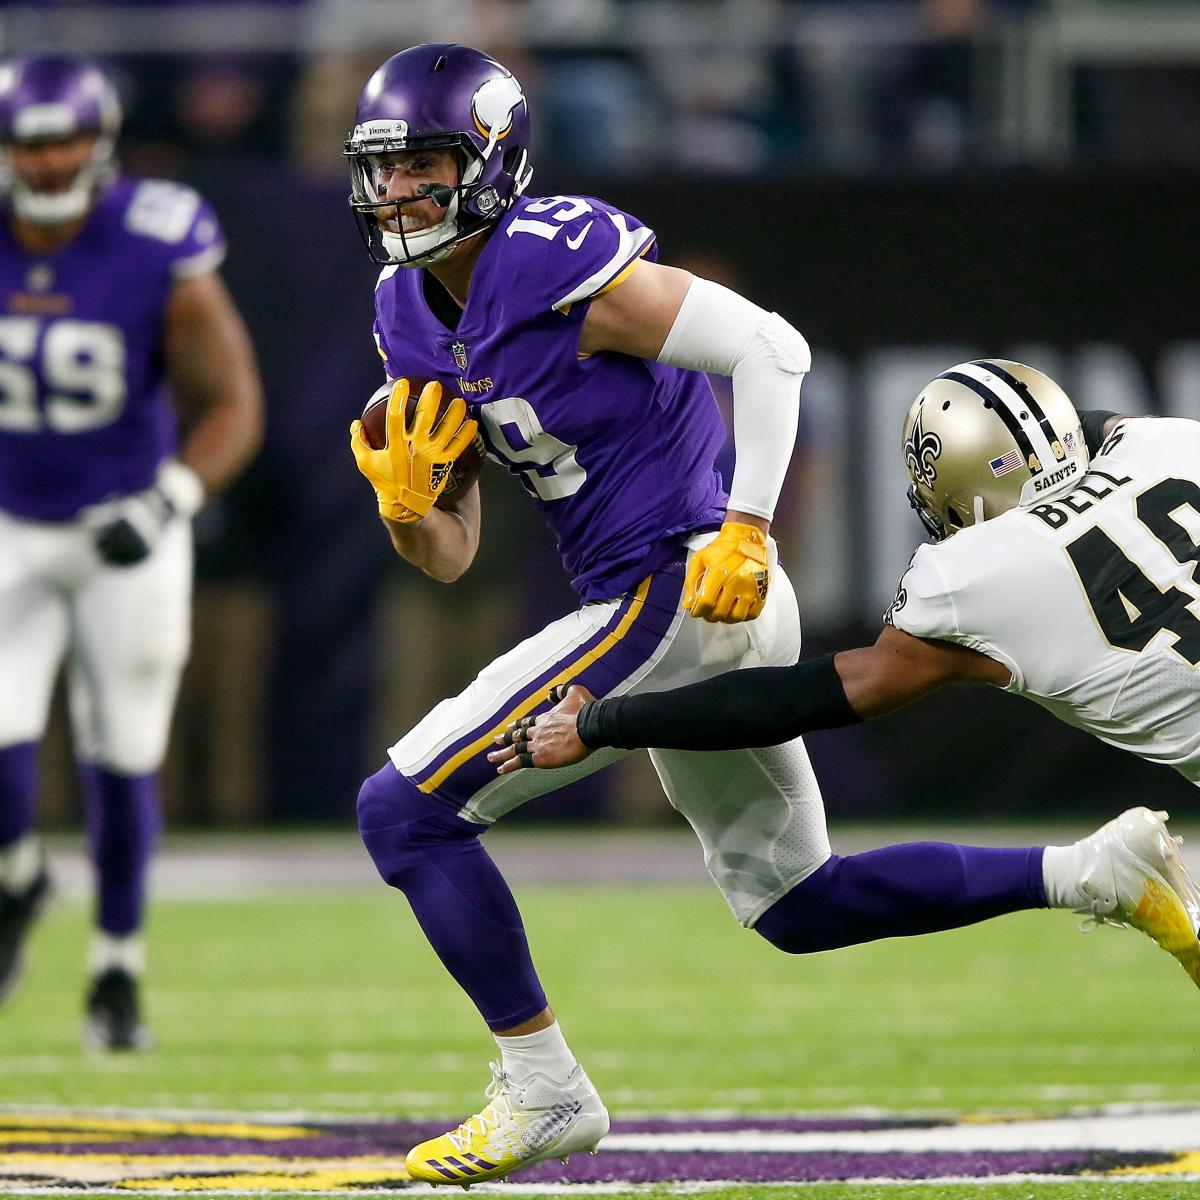 Vikings vs. Eagles: Final Odds, Spread Picks for NFC Championship Game 2018